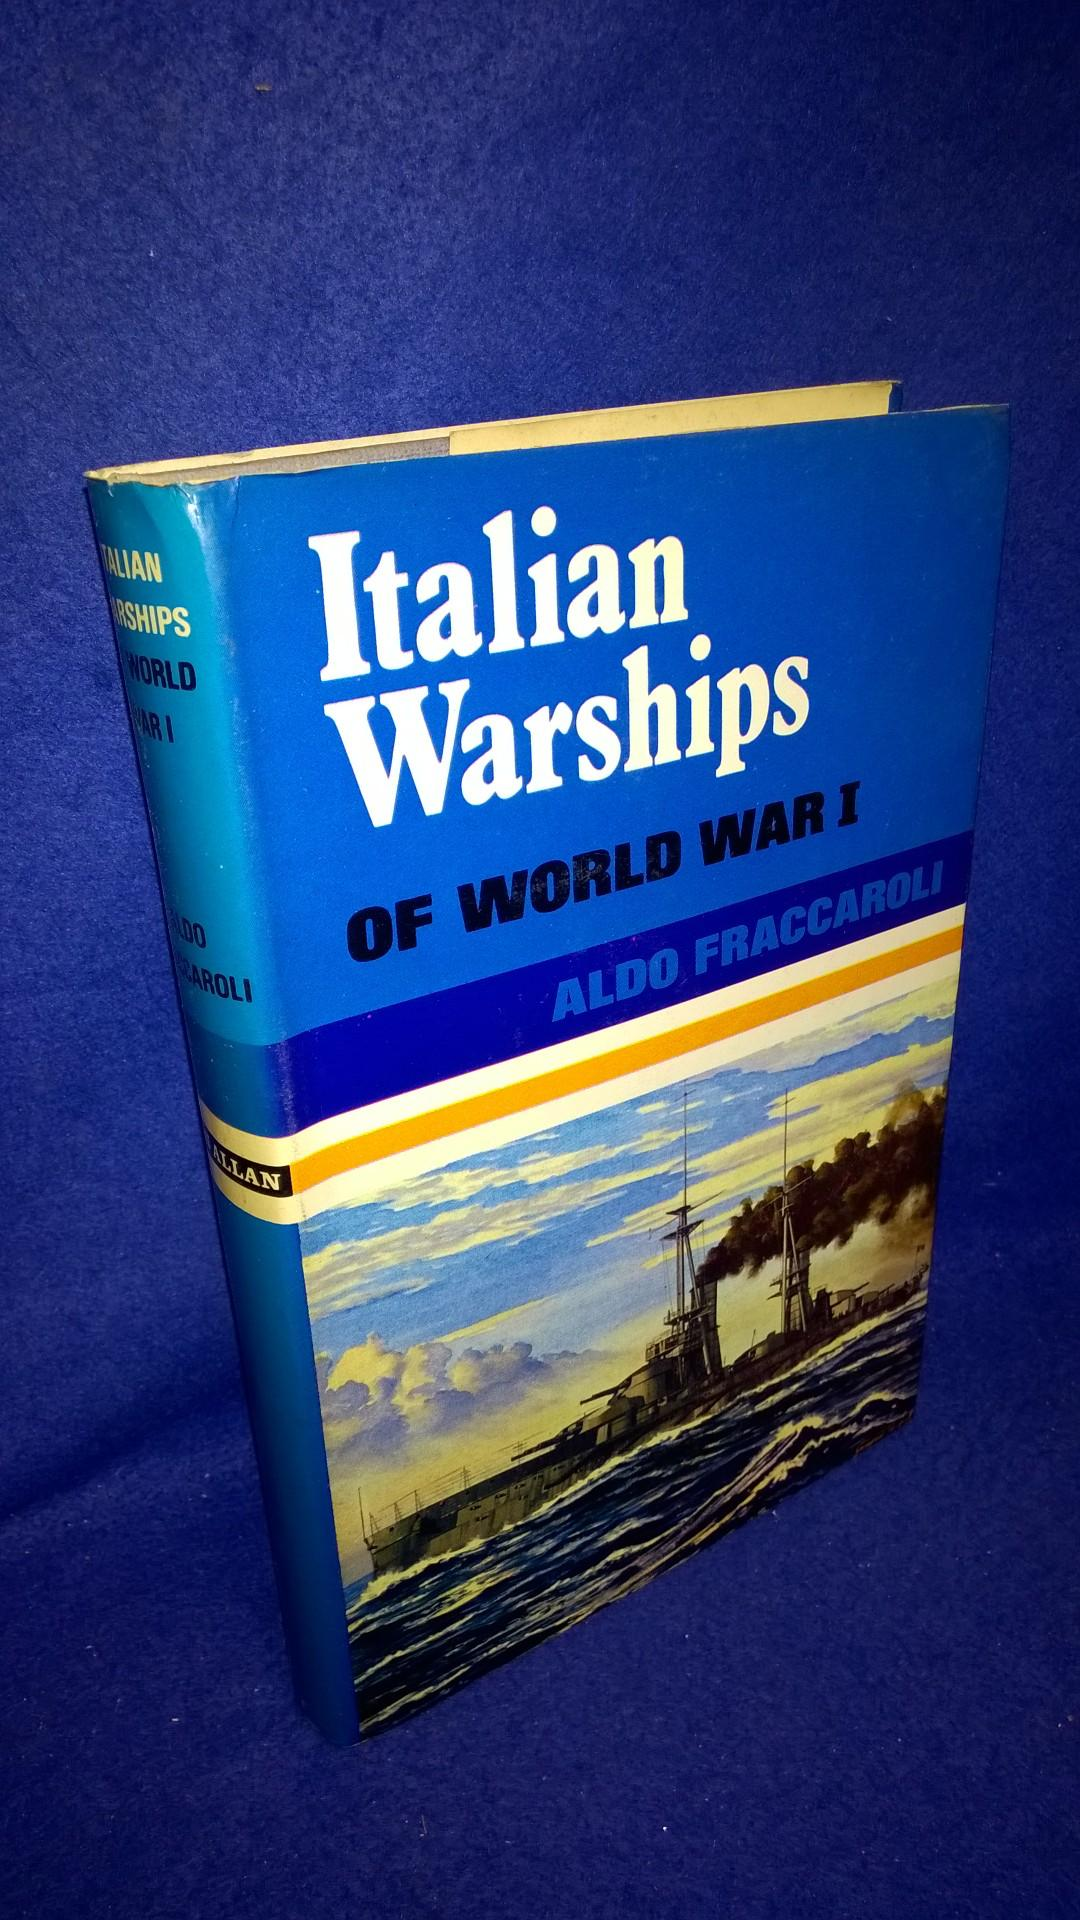 Italian Warships of World War II.